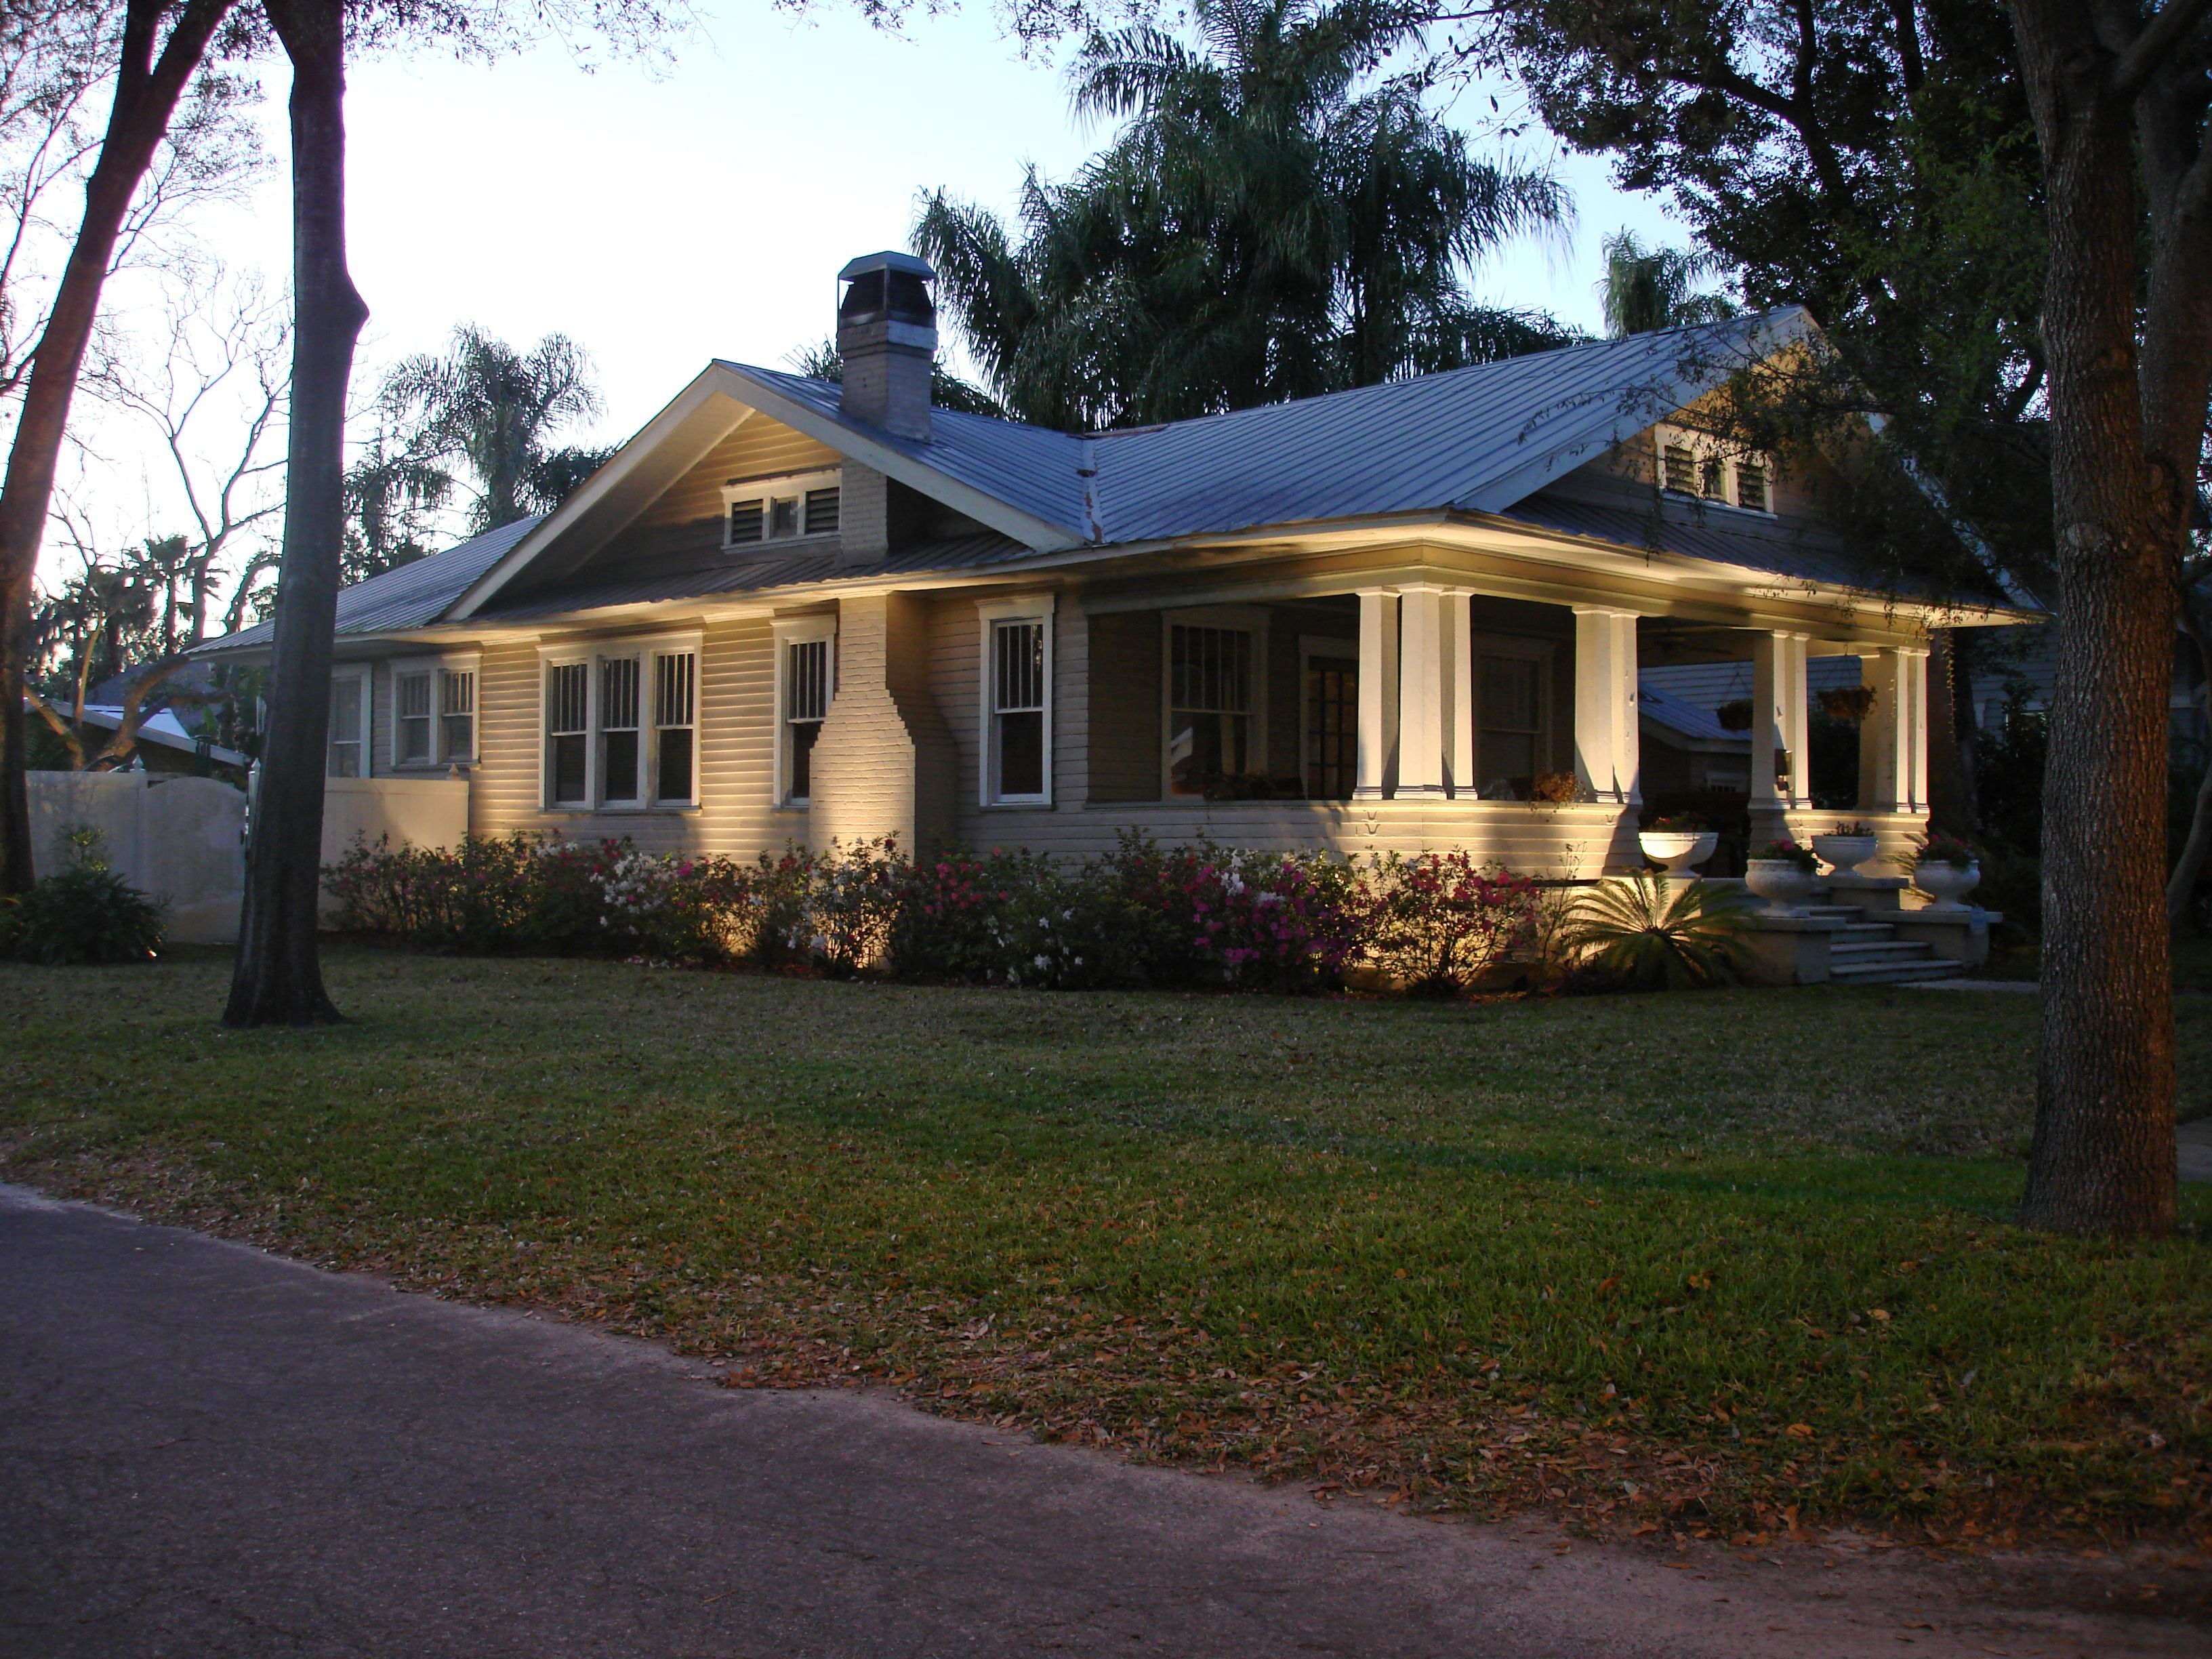 Seattle character homes should never go under the cover of darkness posts about seminole heights on outdoor lighting tampa aloadofball Image collections